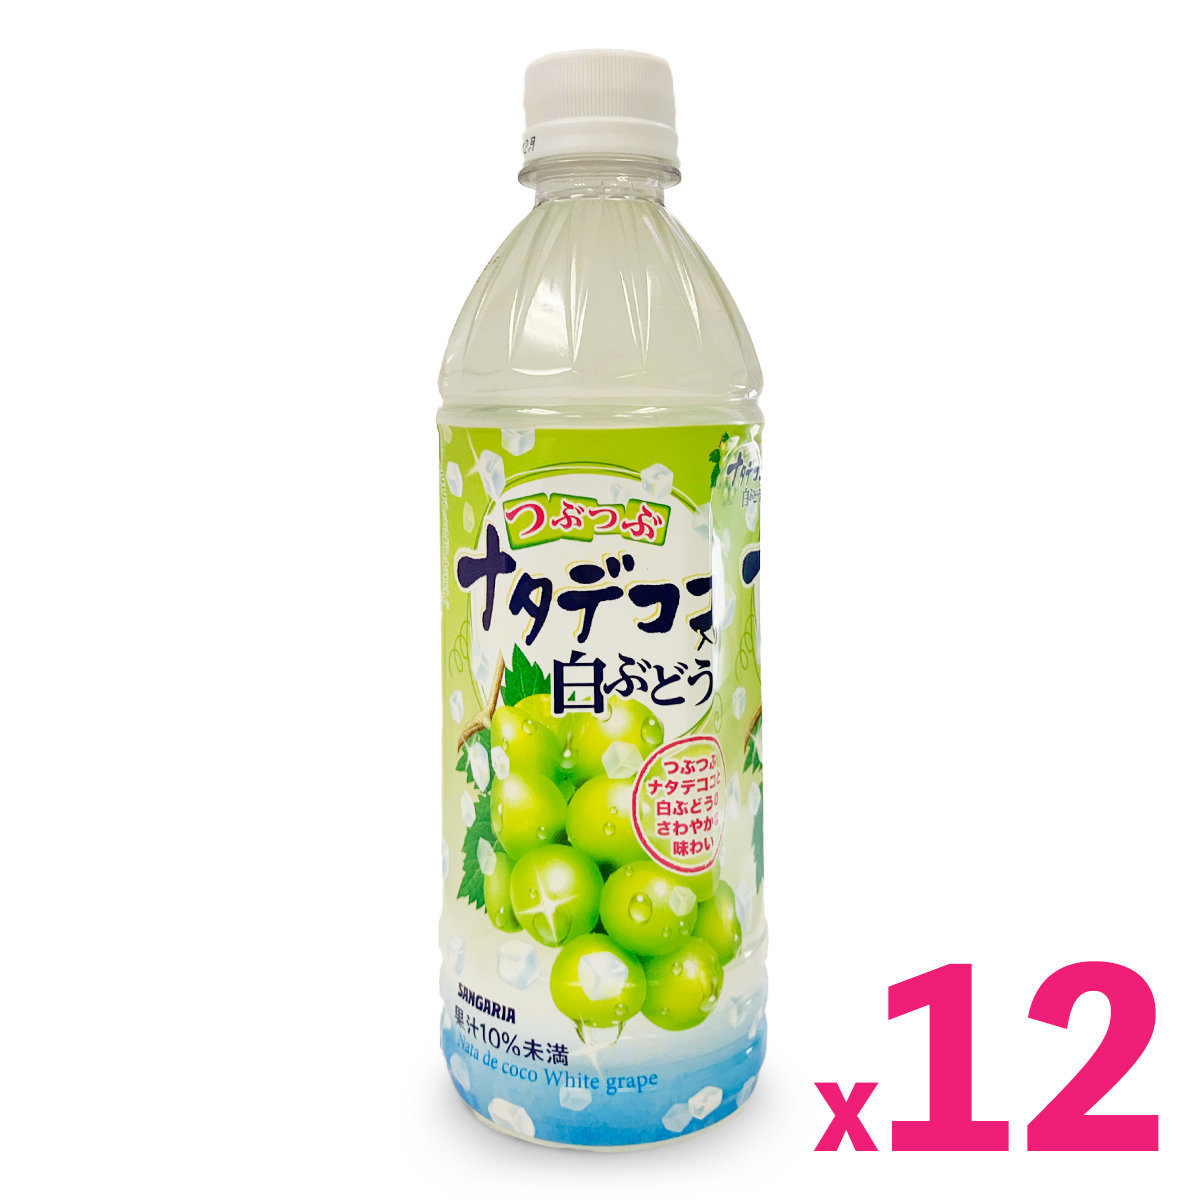 Sangaria Muscat Juice with Coconut Jelly (500ml) x 12bottles